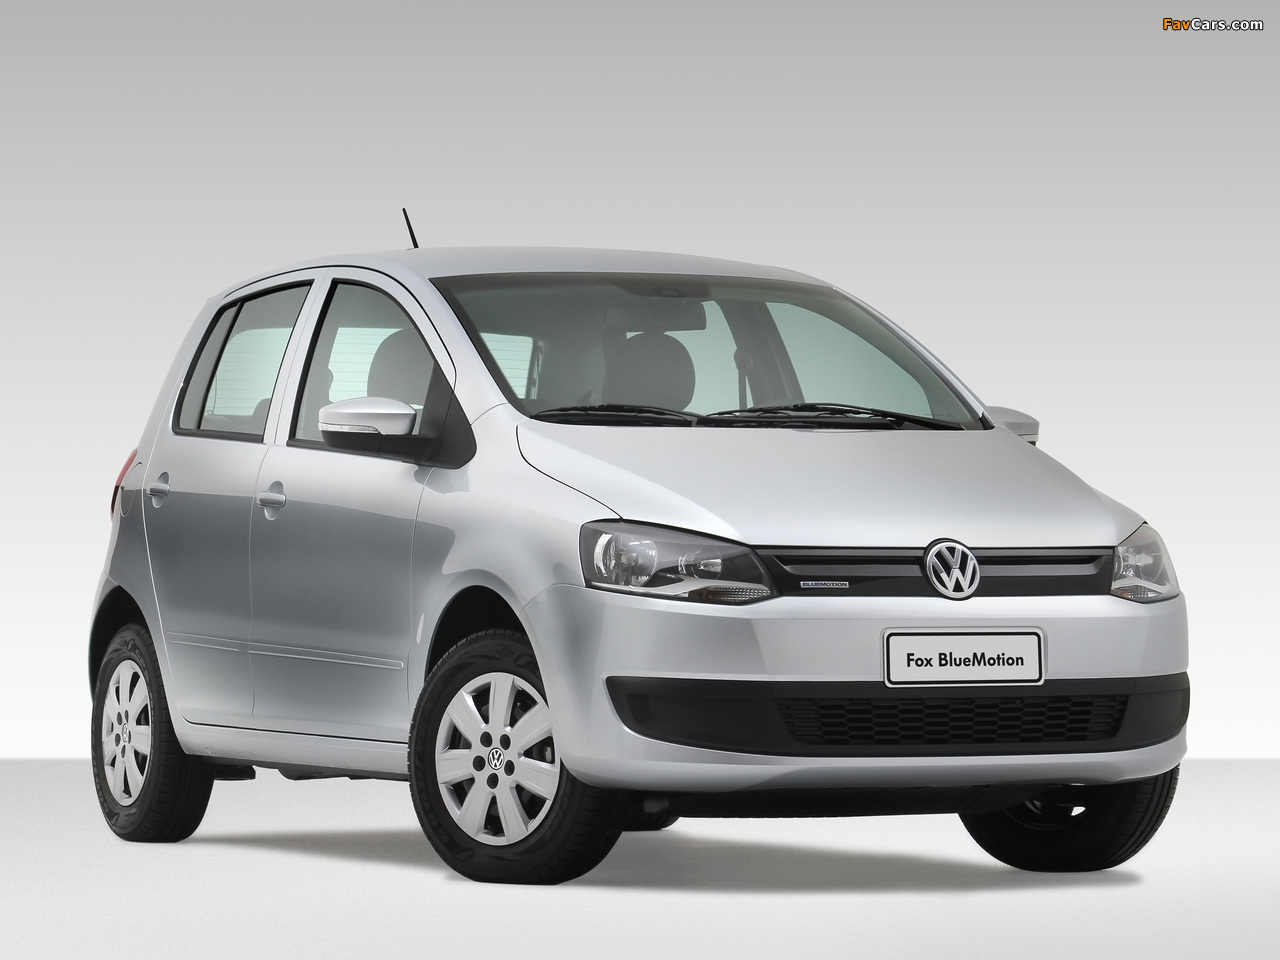 Volkswagen Fox BlueMotion 5-door 2012 images (1280 x 960)